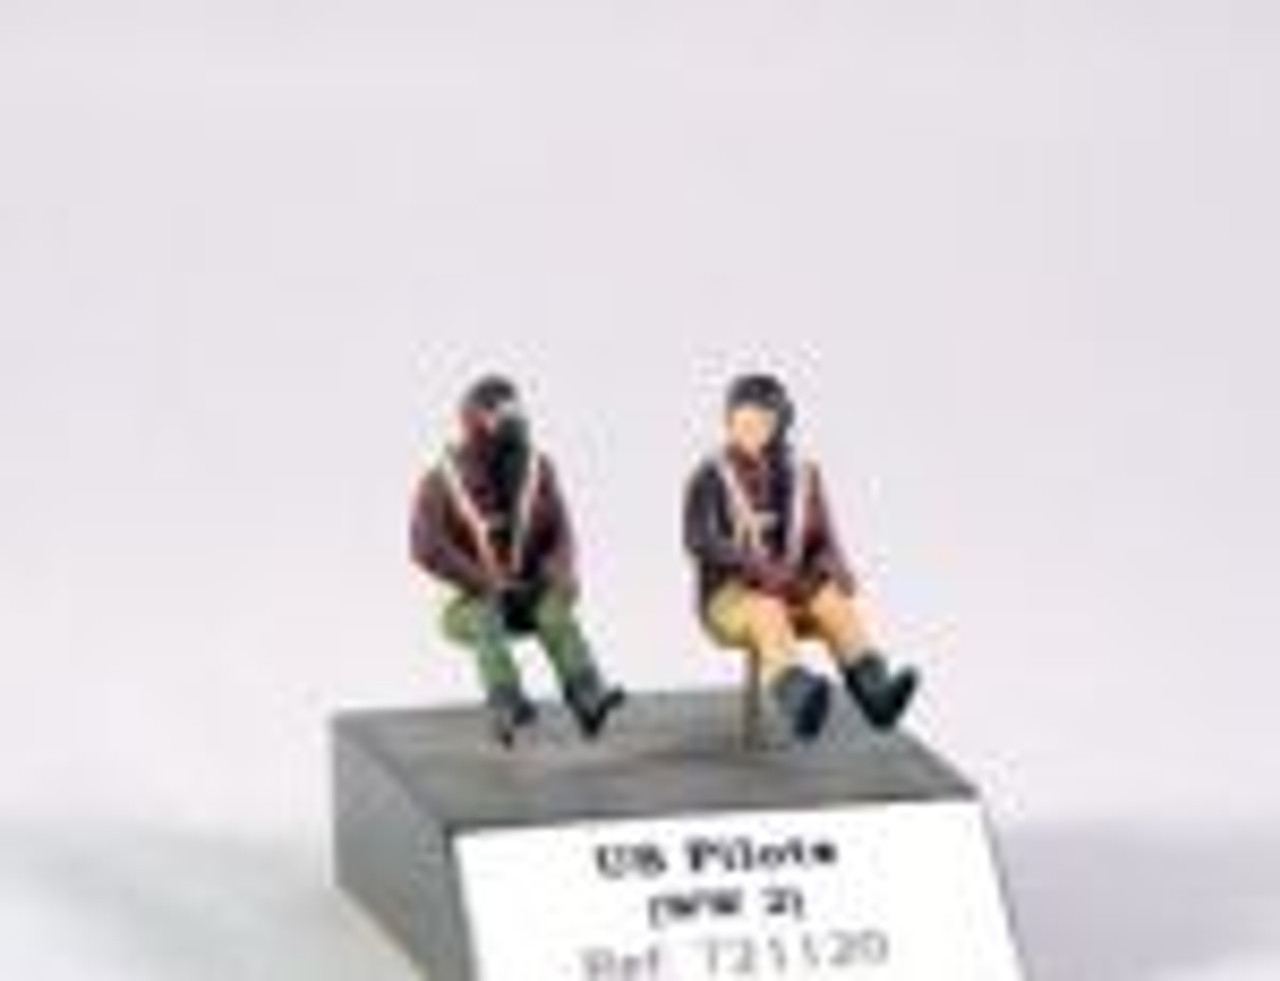 PJ Productions 2x USAF pilots seated in a/c WW2 Figures 1:72